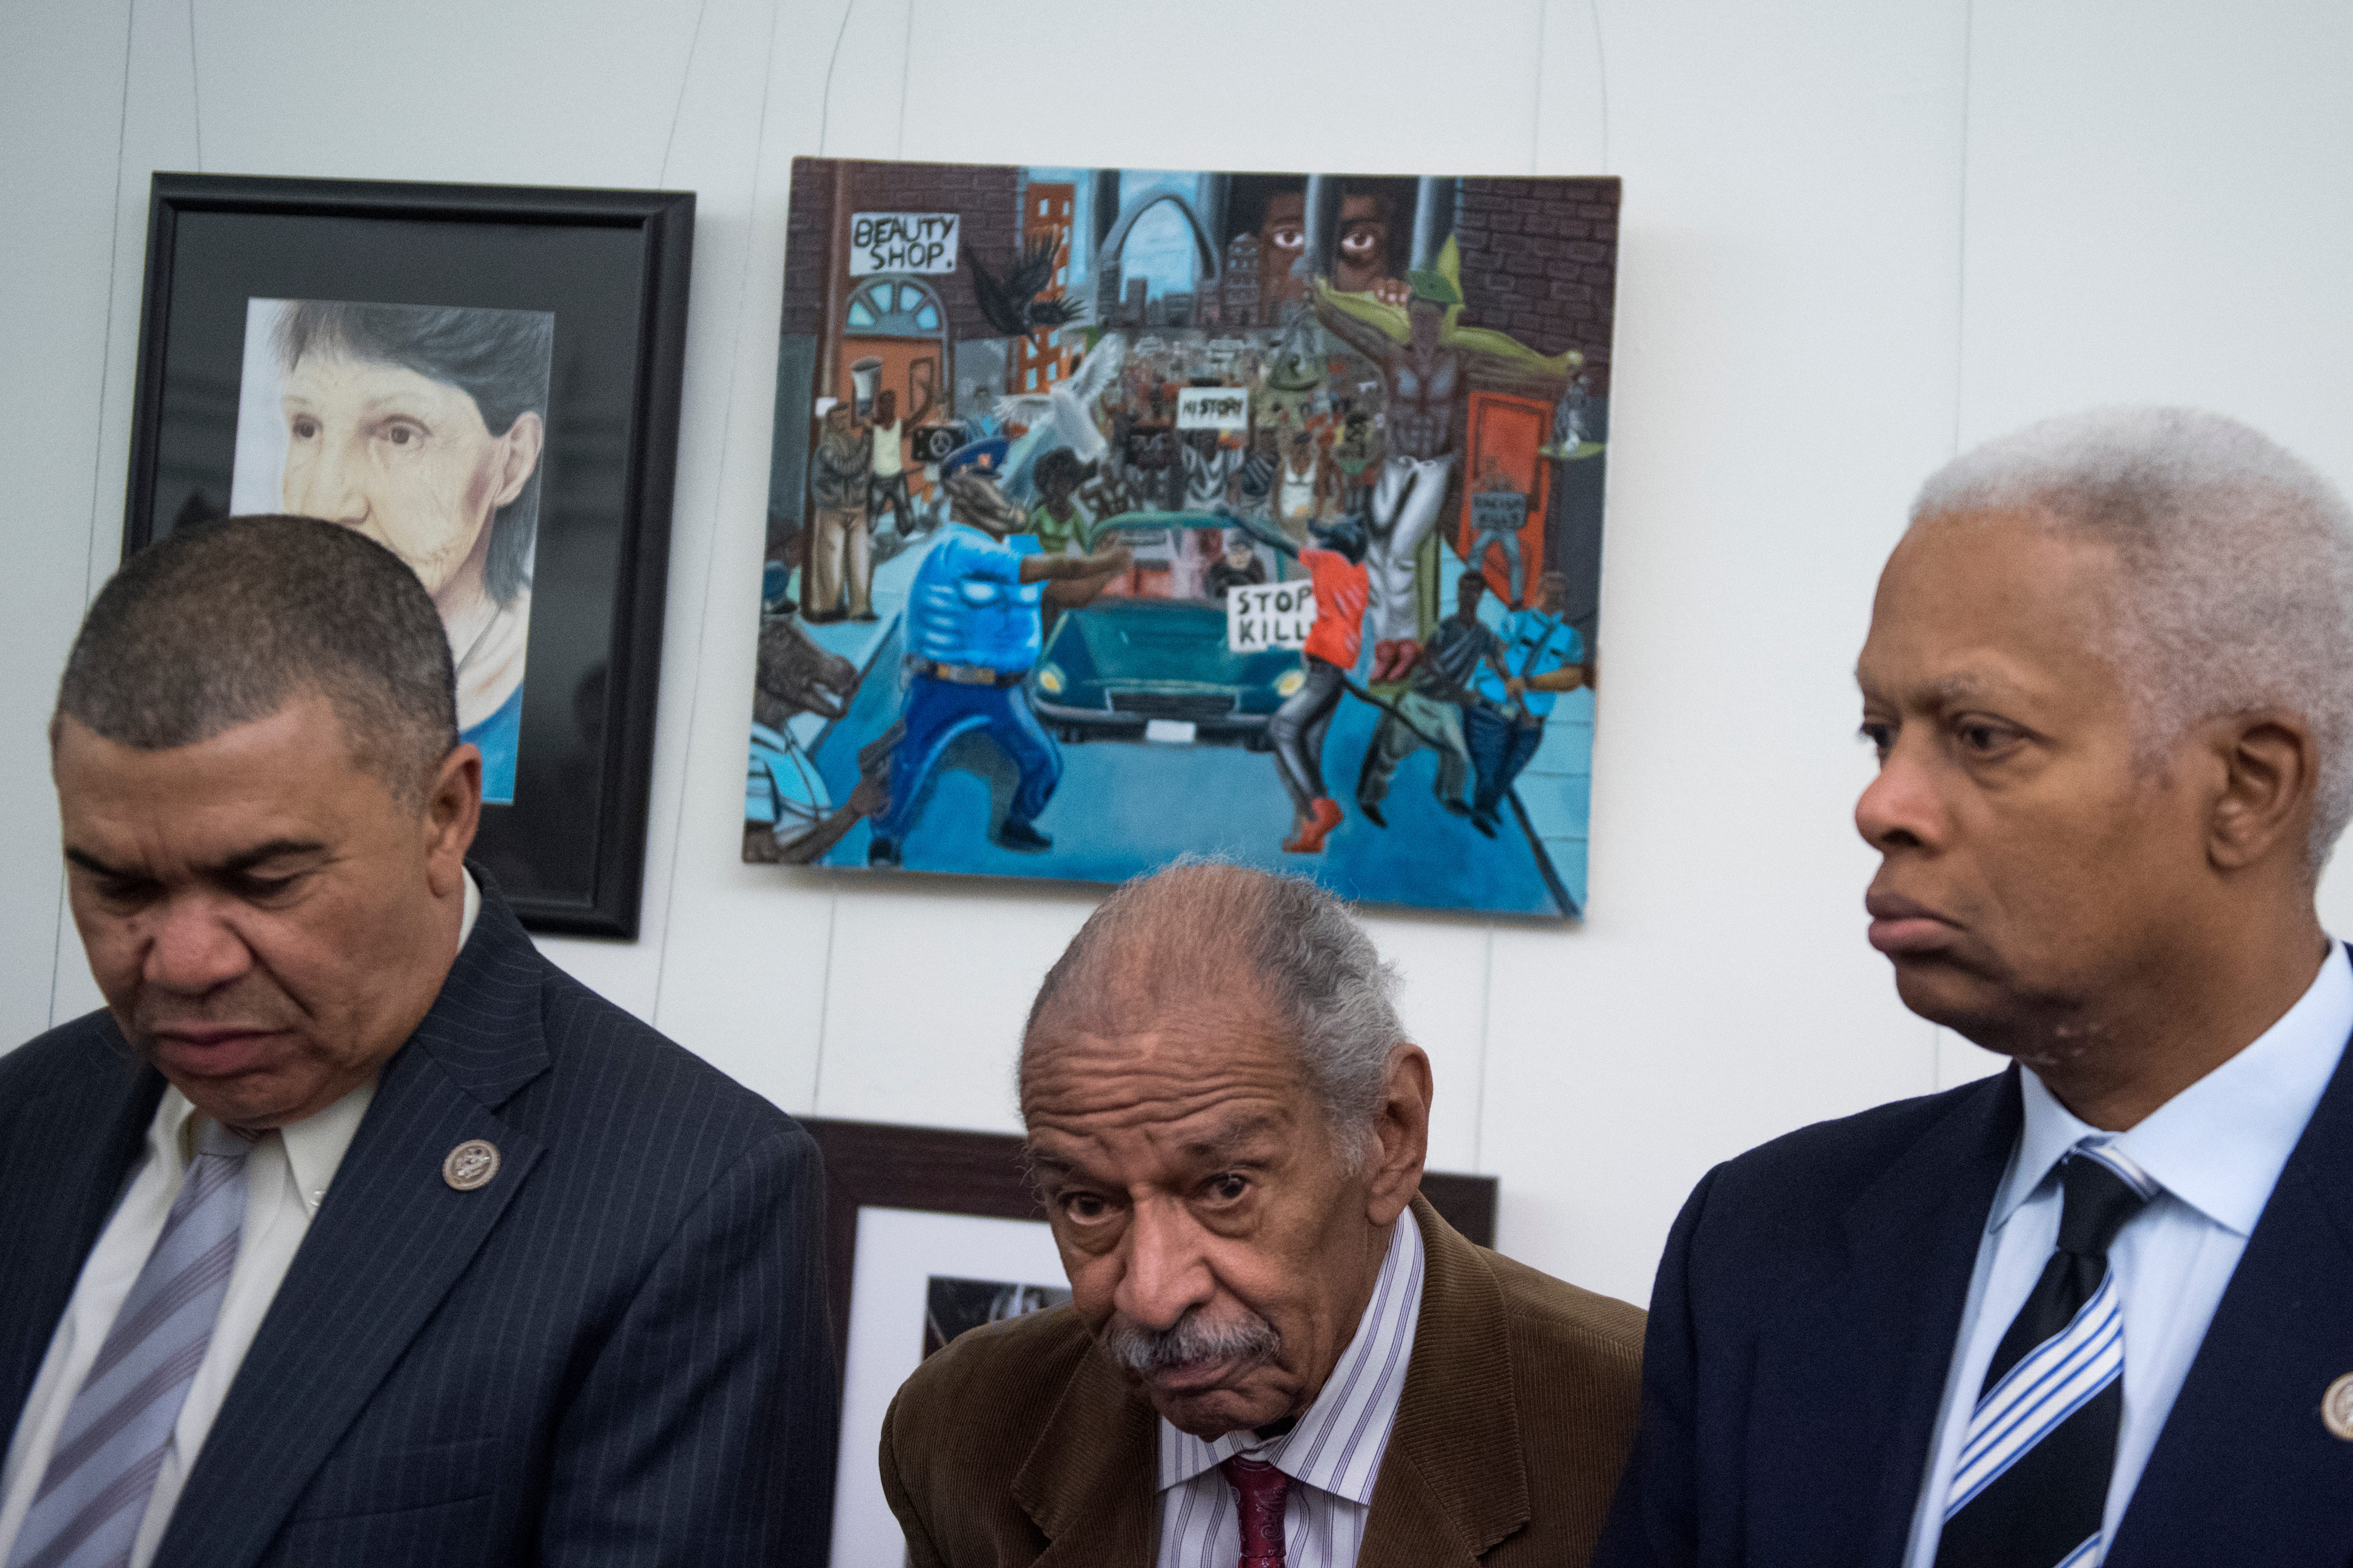 From left, Clay, Conyers and Johnson in front of the painting in the Cannon tunnel on Tuesday. (Tom Williams/CQ Roll Call)